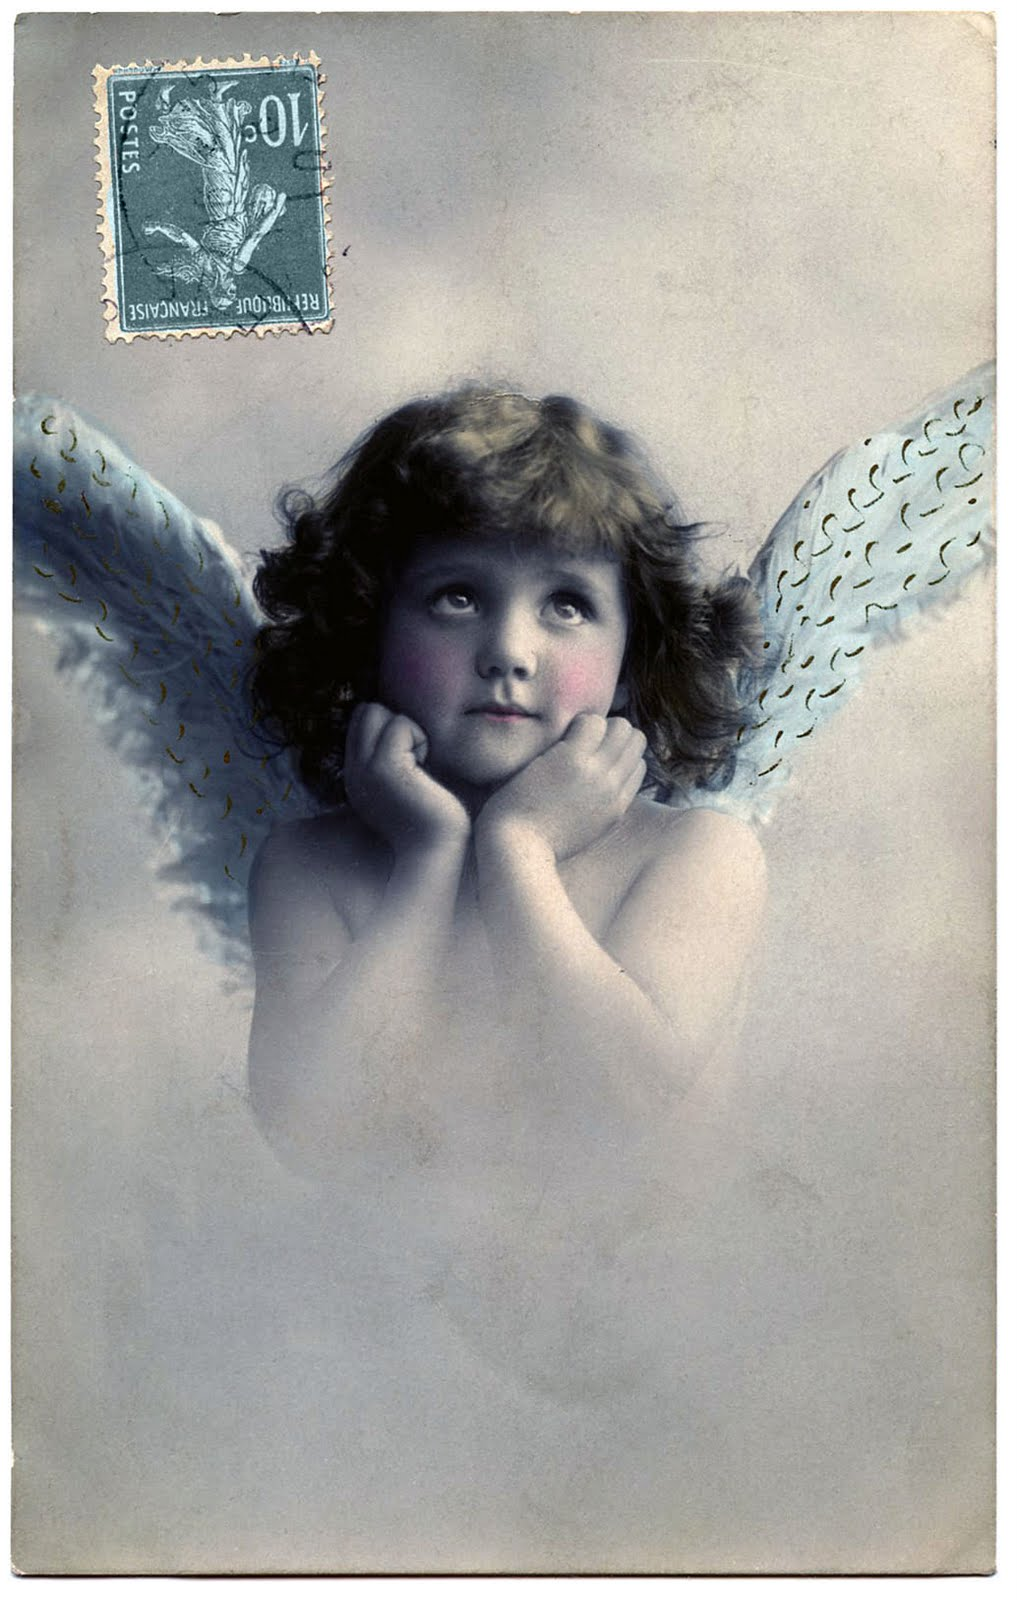 Vintage Image - Best Little Angel Girl - Old Photo - The Graphics ...